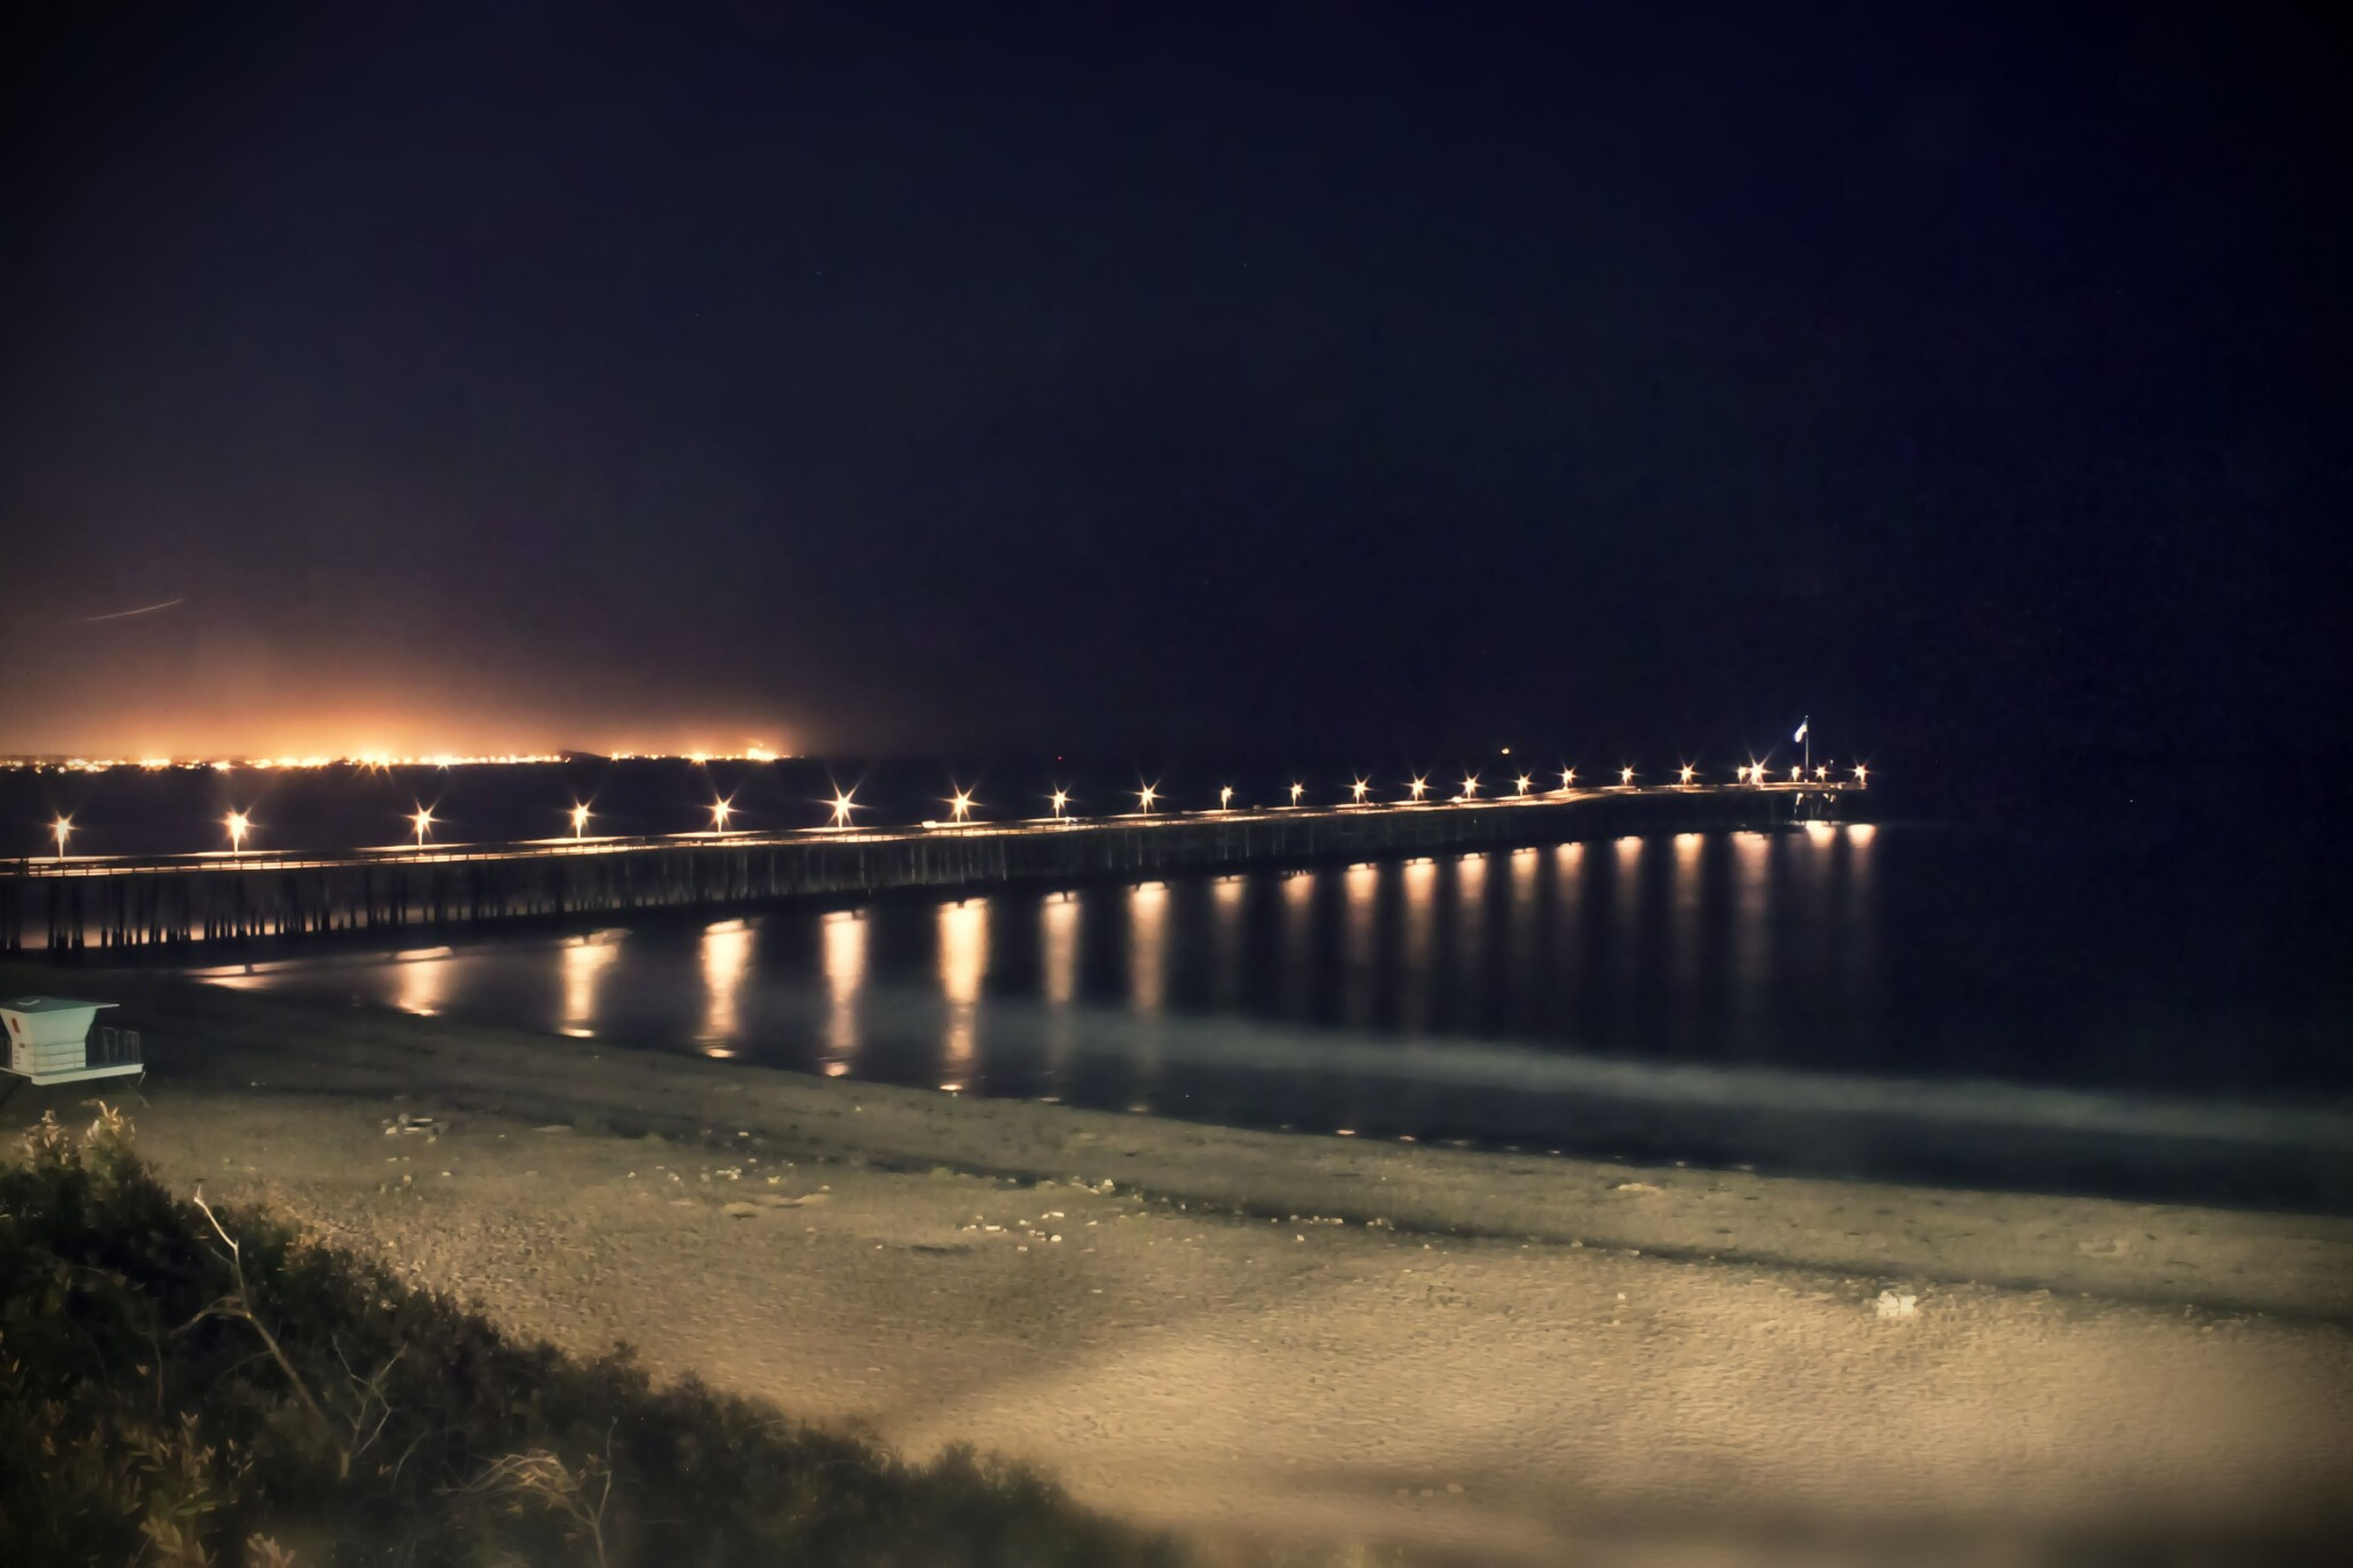 night, illuminated, water, built structure, architecture, reflection, river, bridge - man made structure, copy space, sea, sky, clear sky, connection, beach, city, bridge, street light, outdoors, shore, dusk